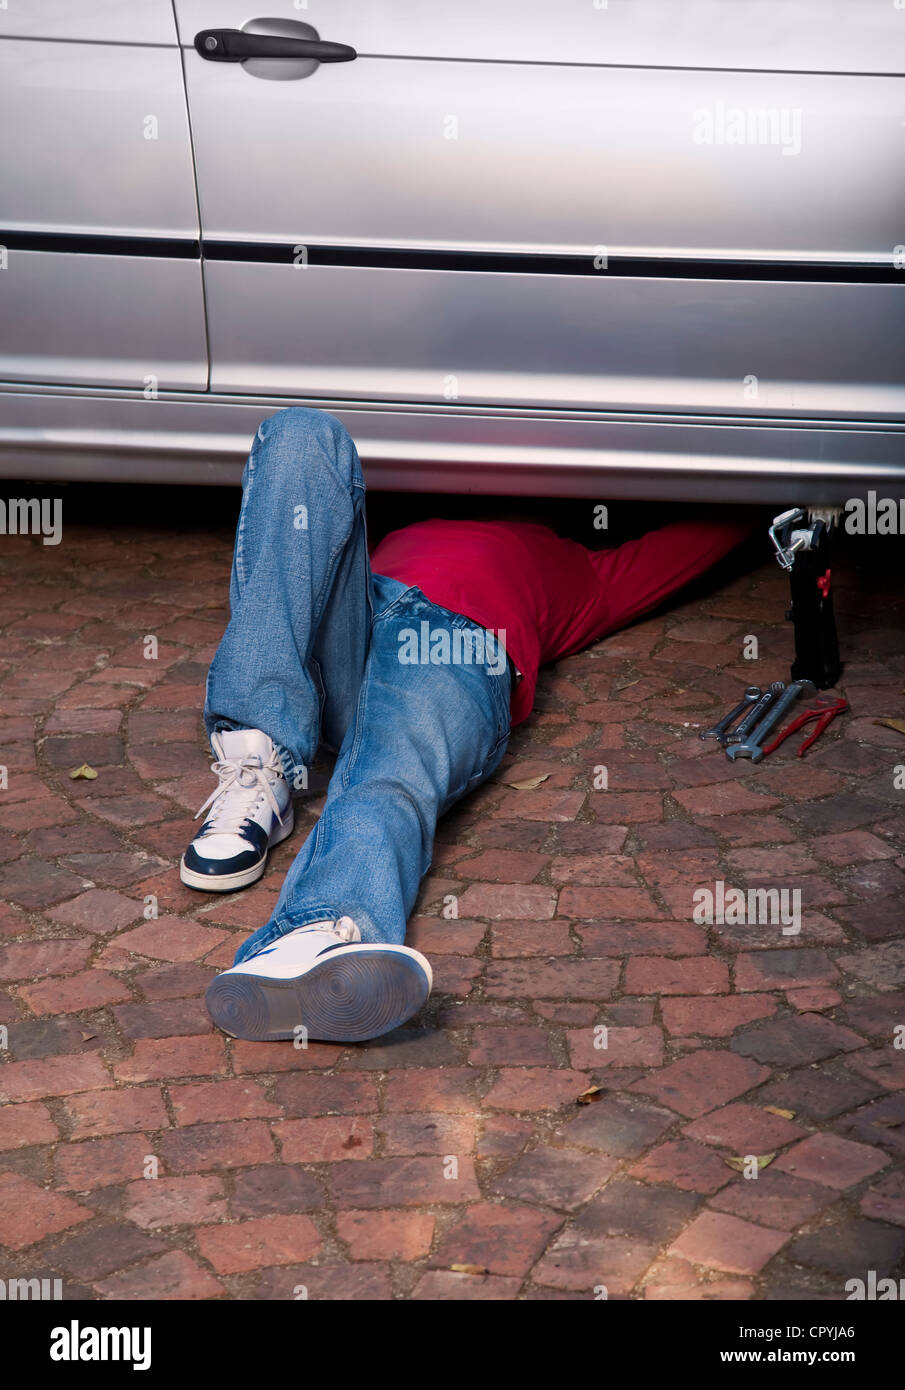 African man working on a car while lying underneath it - Stock Image